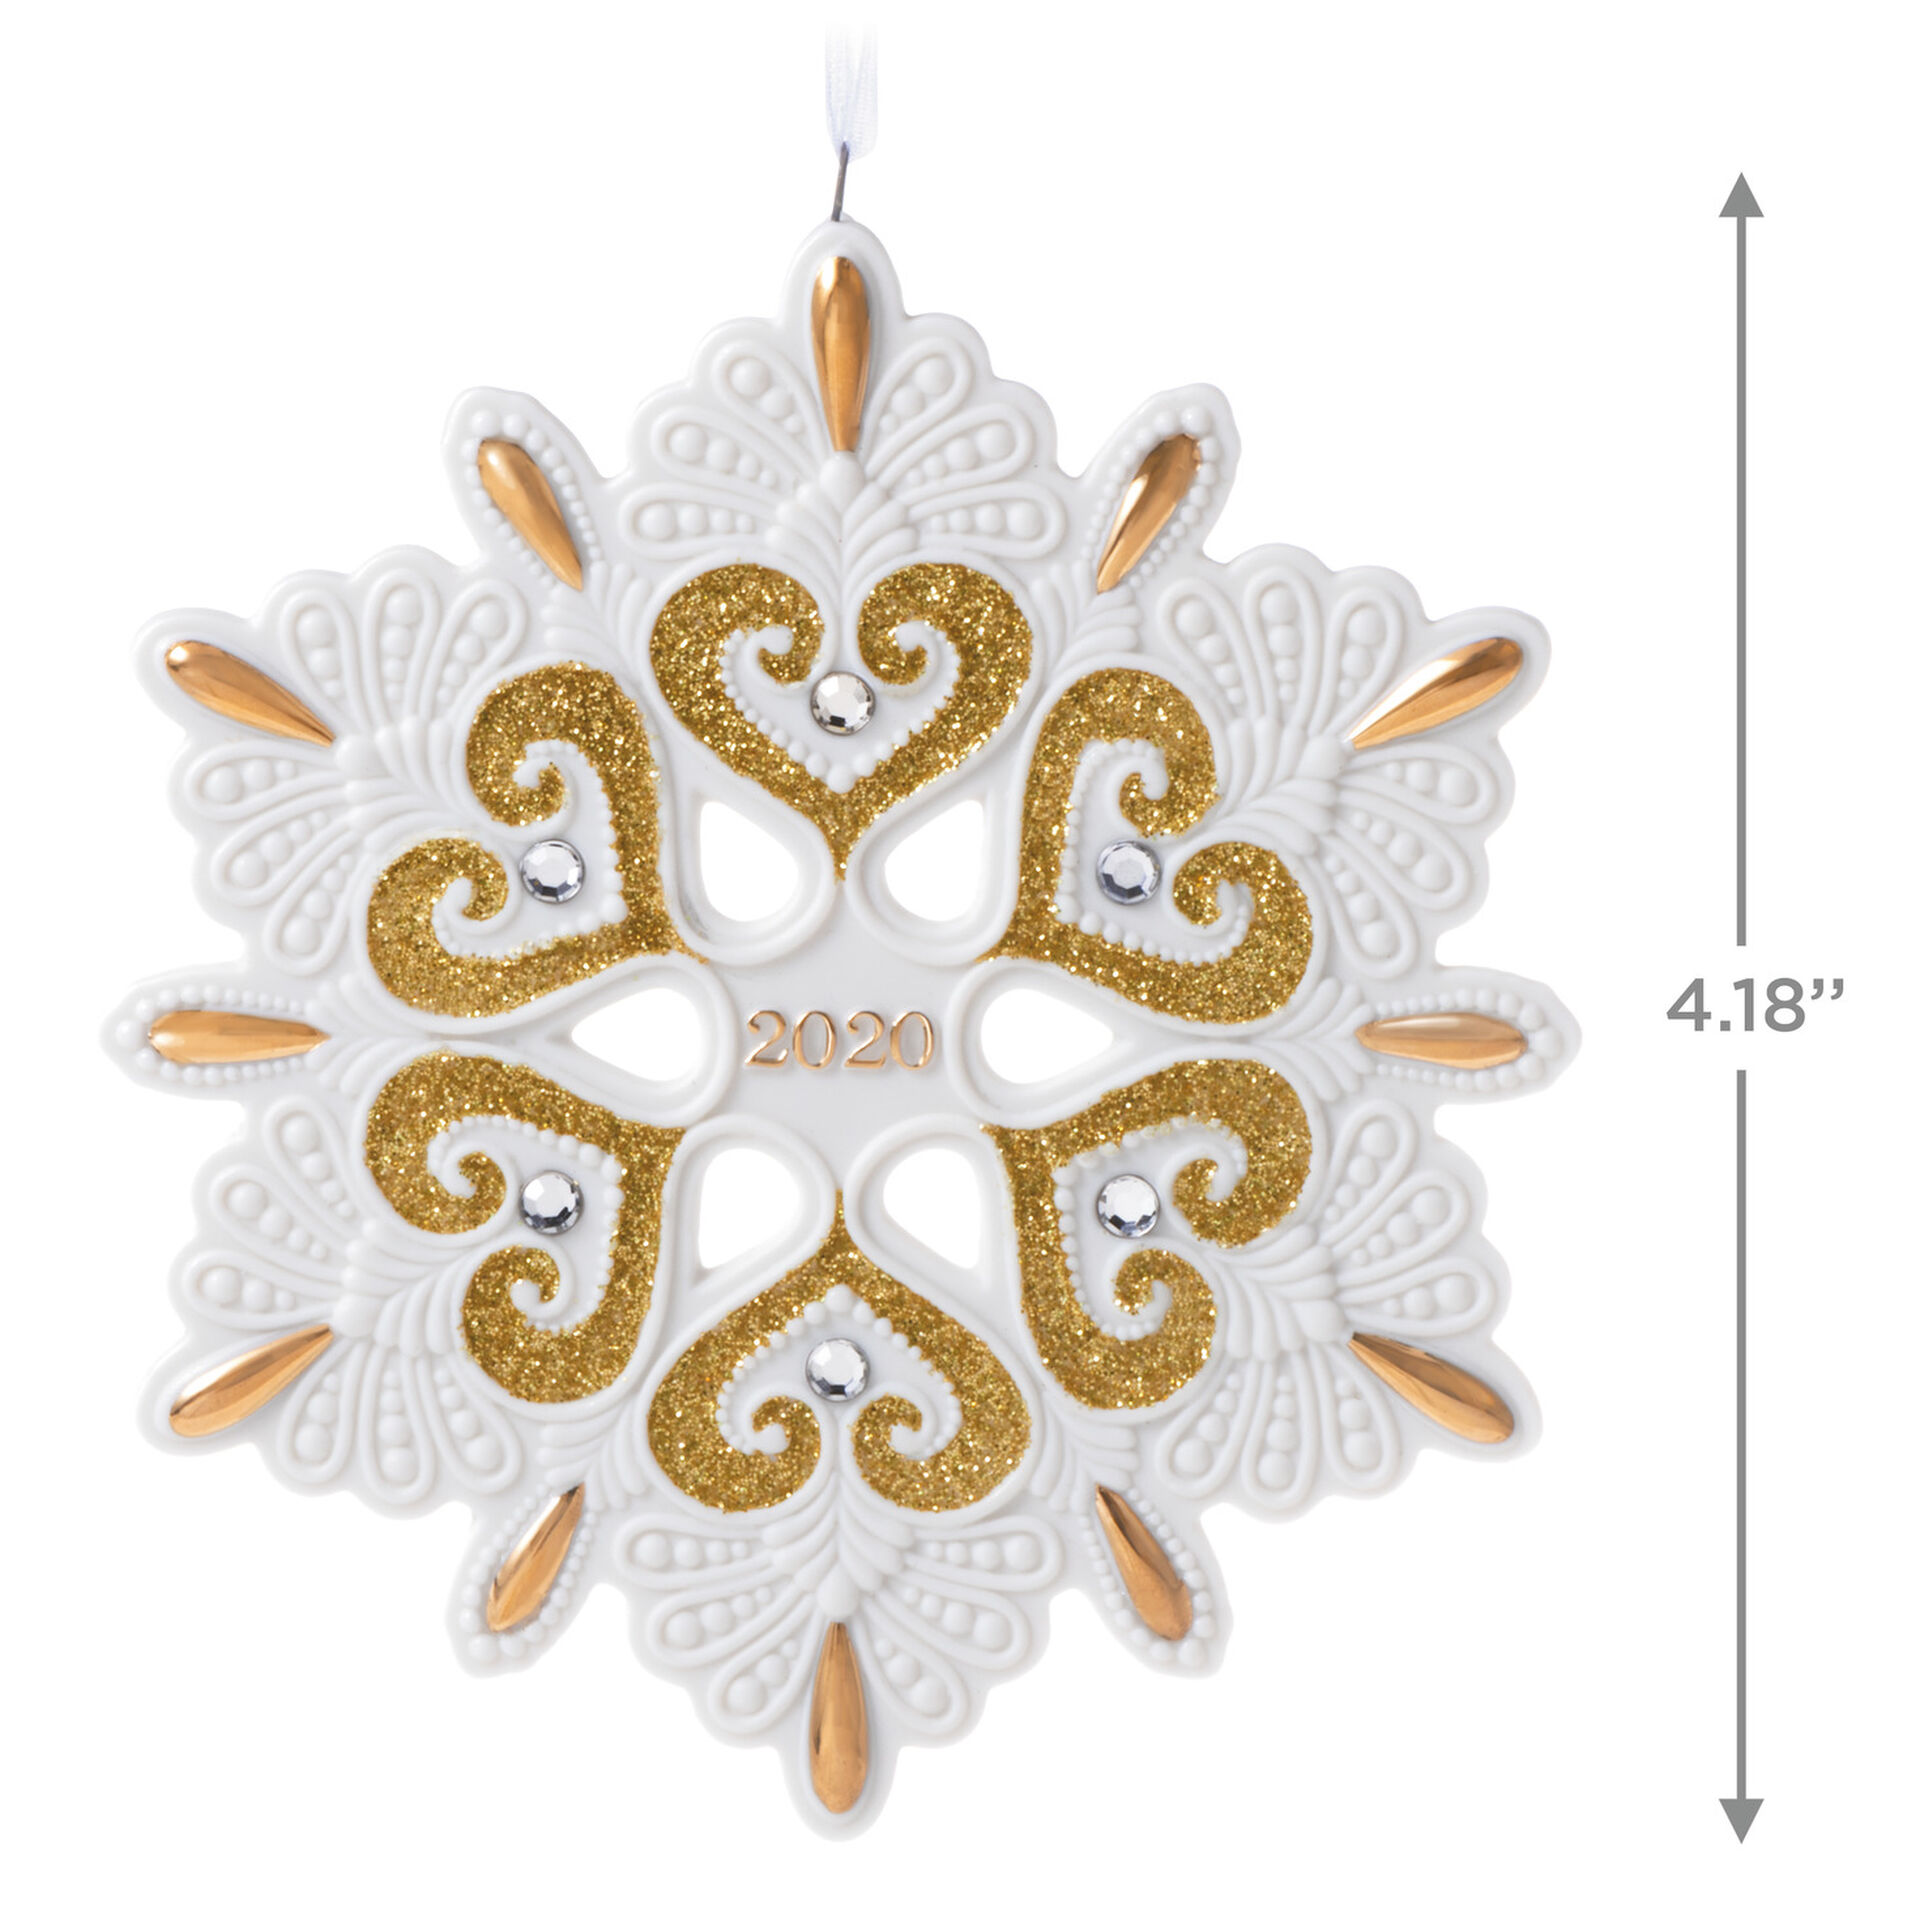 2020 Hallmark Keepsake Ornament - 2020 Porcelain Snowflake Ornament